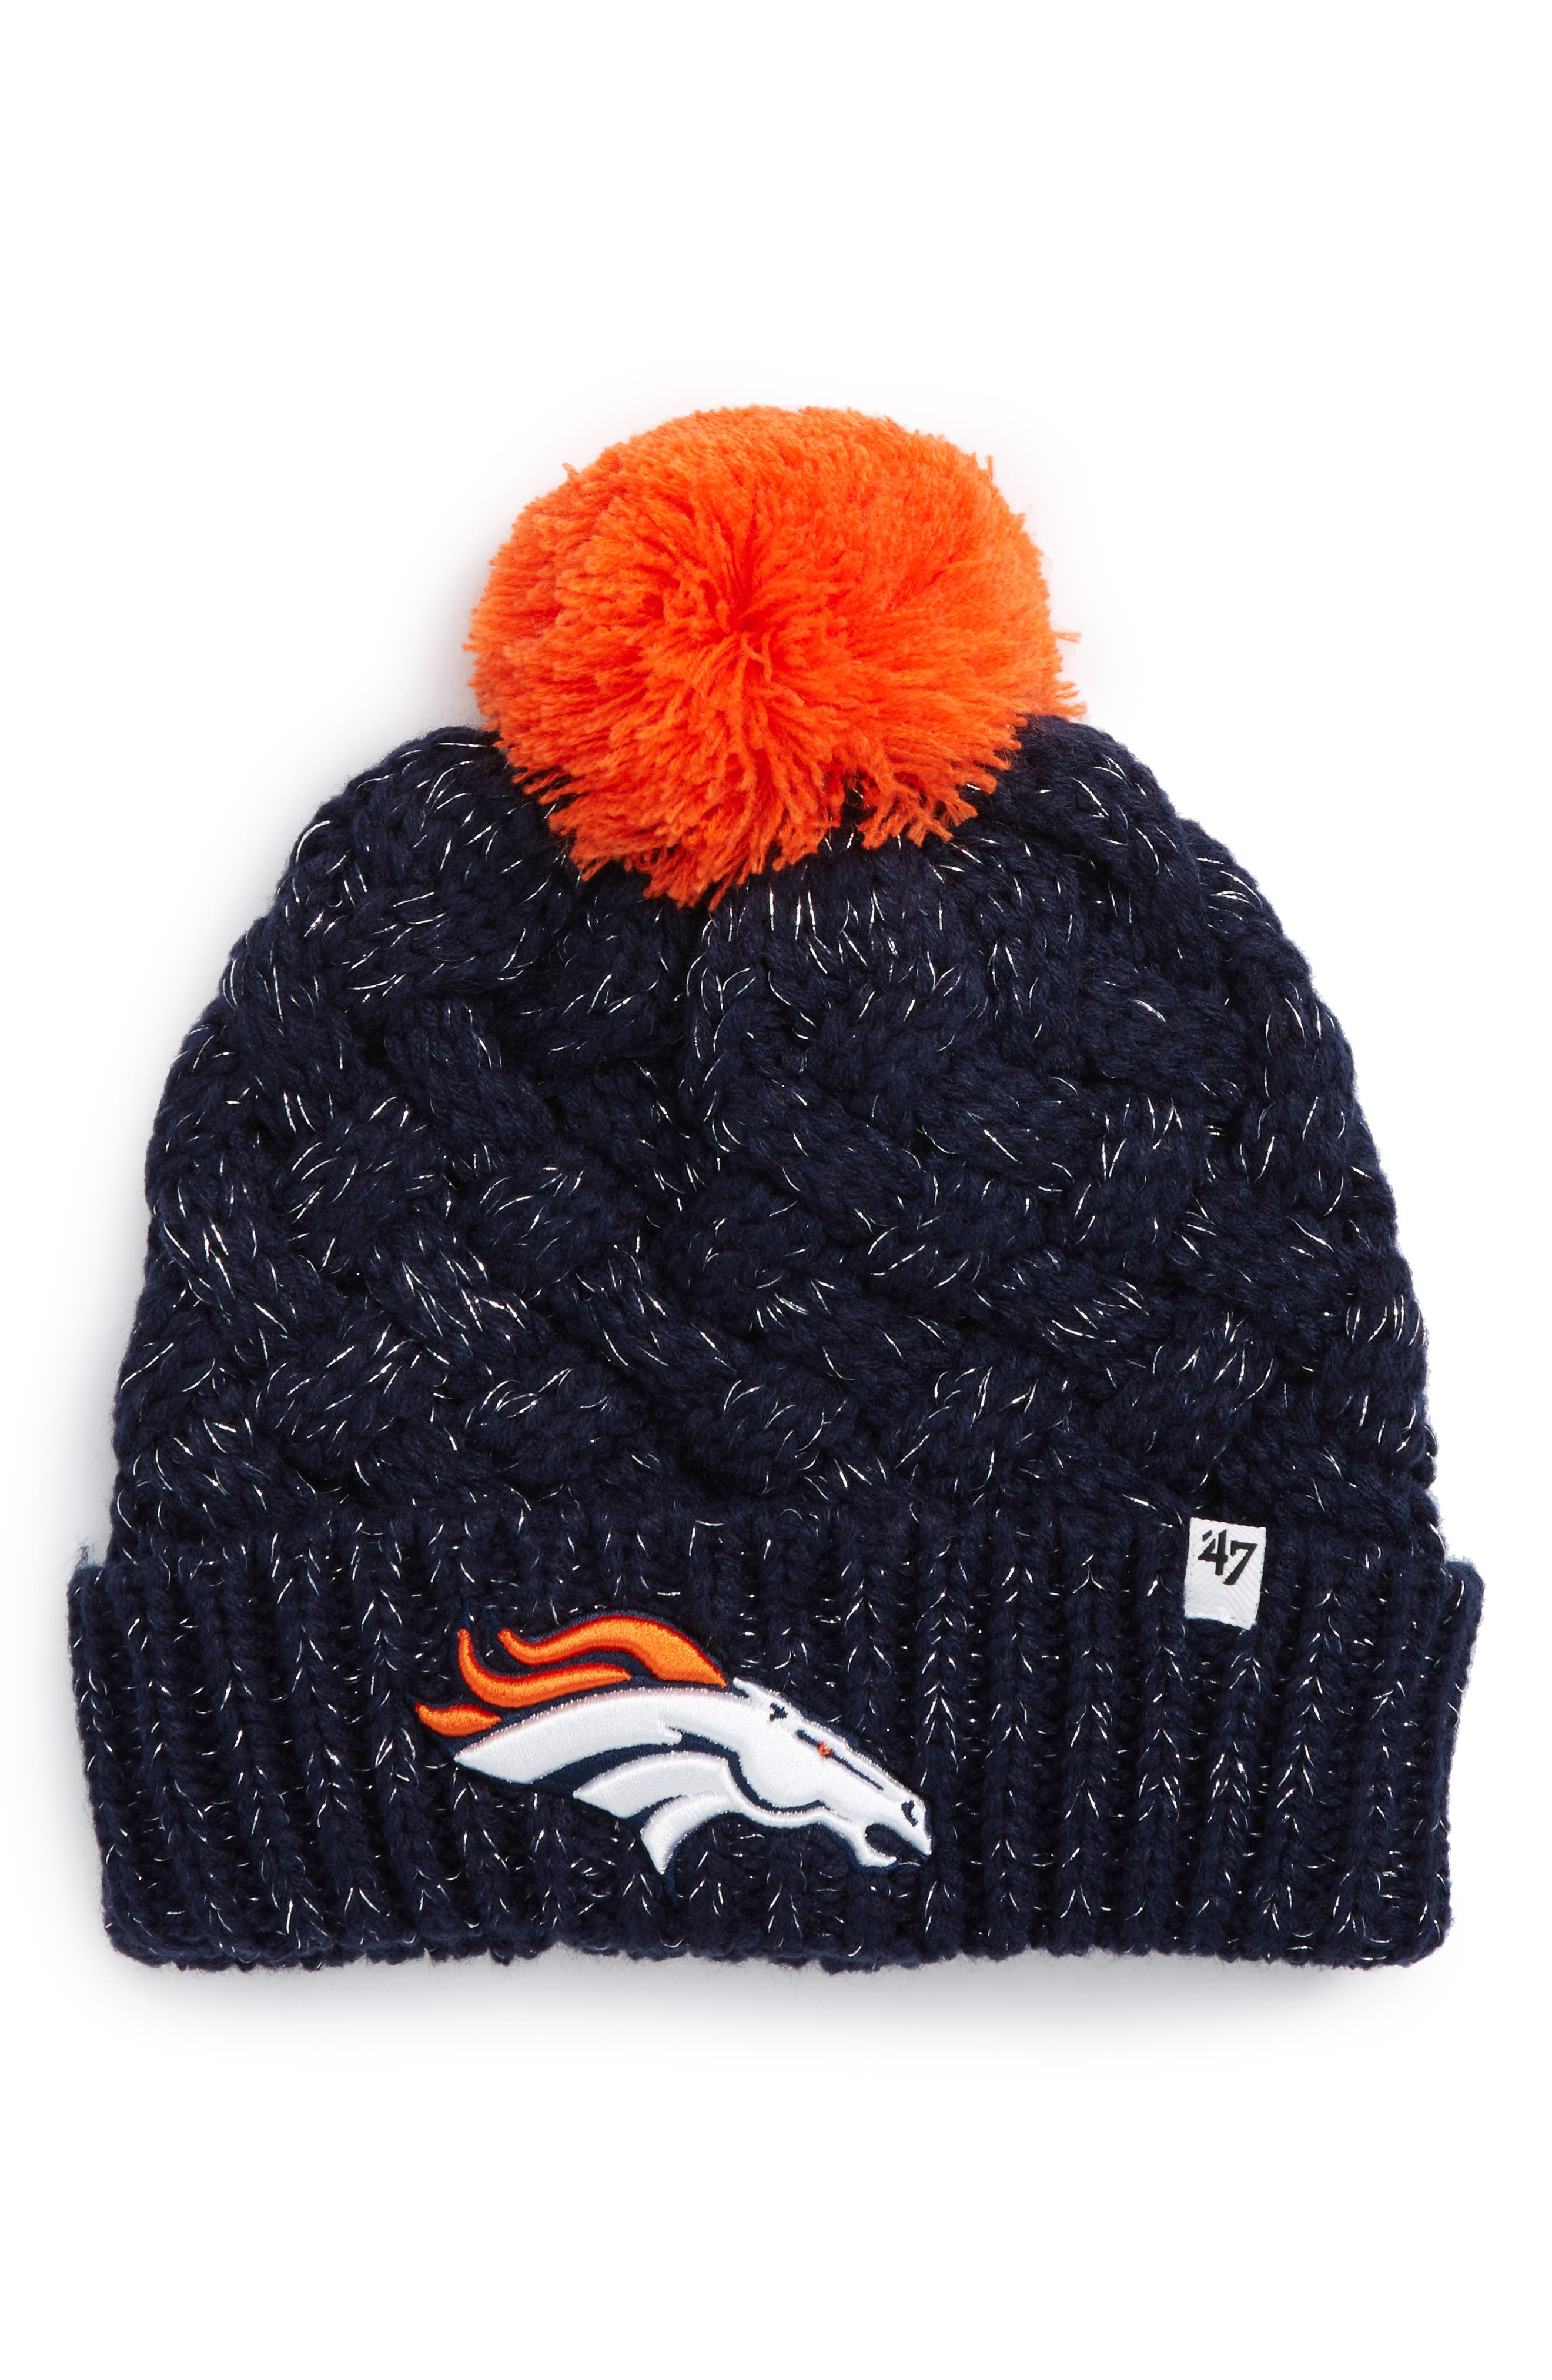 Alternate Image 1 Selected - '47 Fiona Denver Broncos Pom Beanie